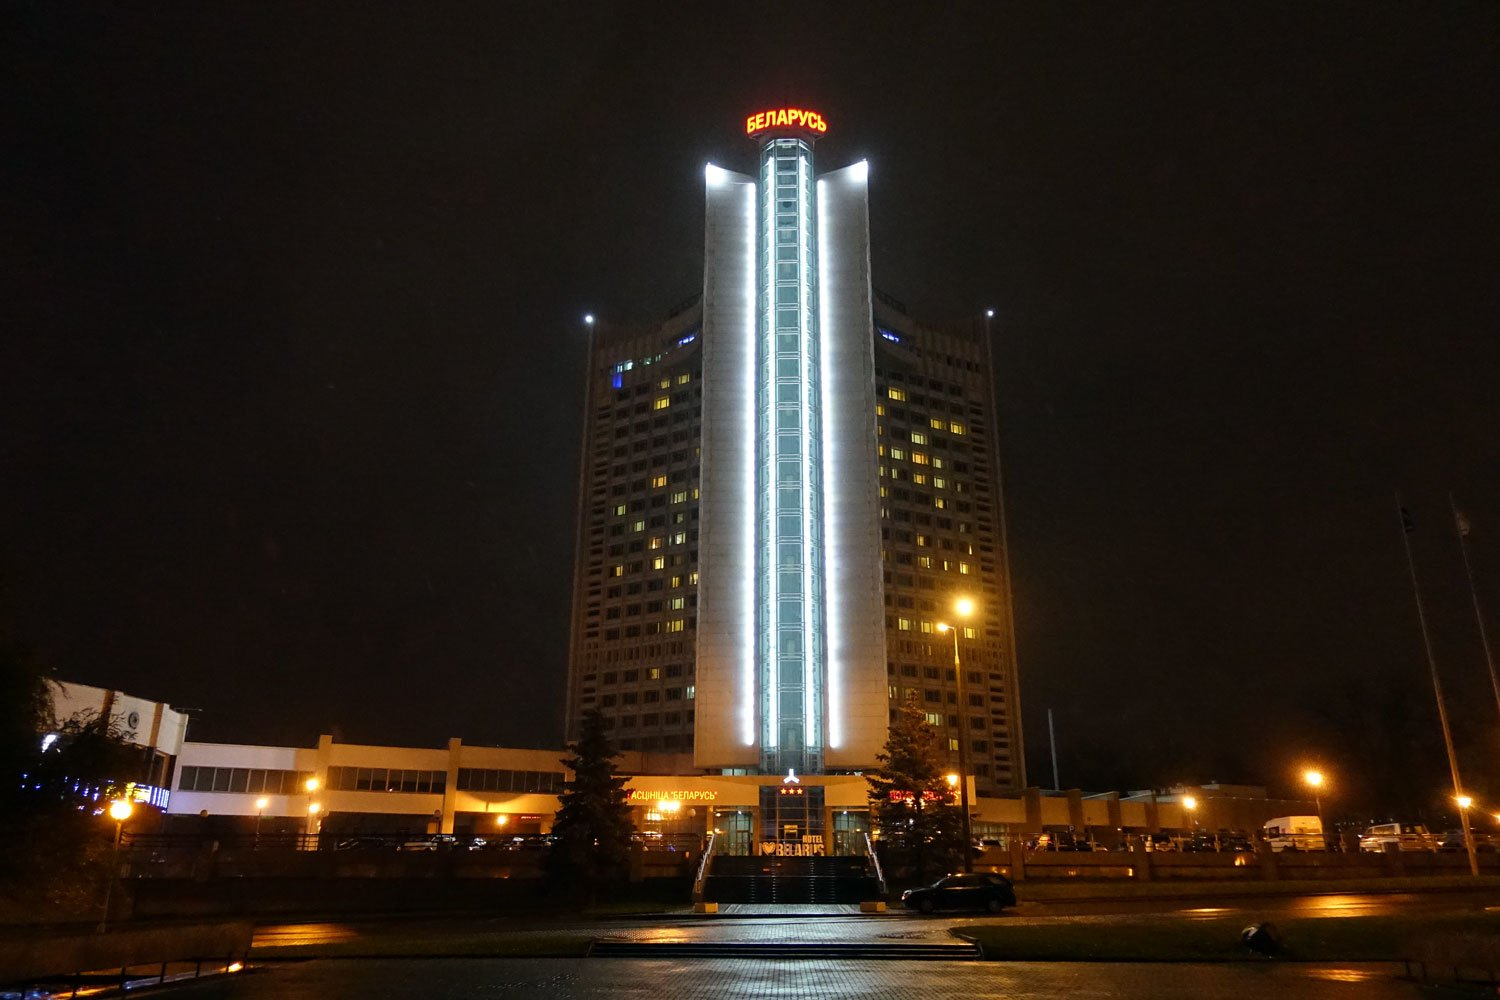 hotel belarus minsk night view